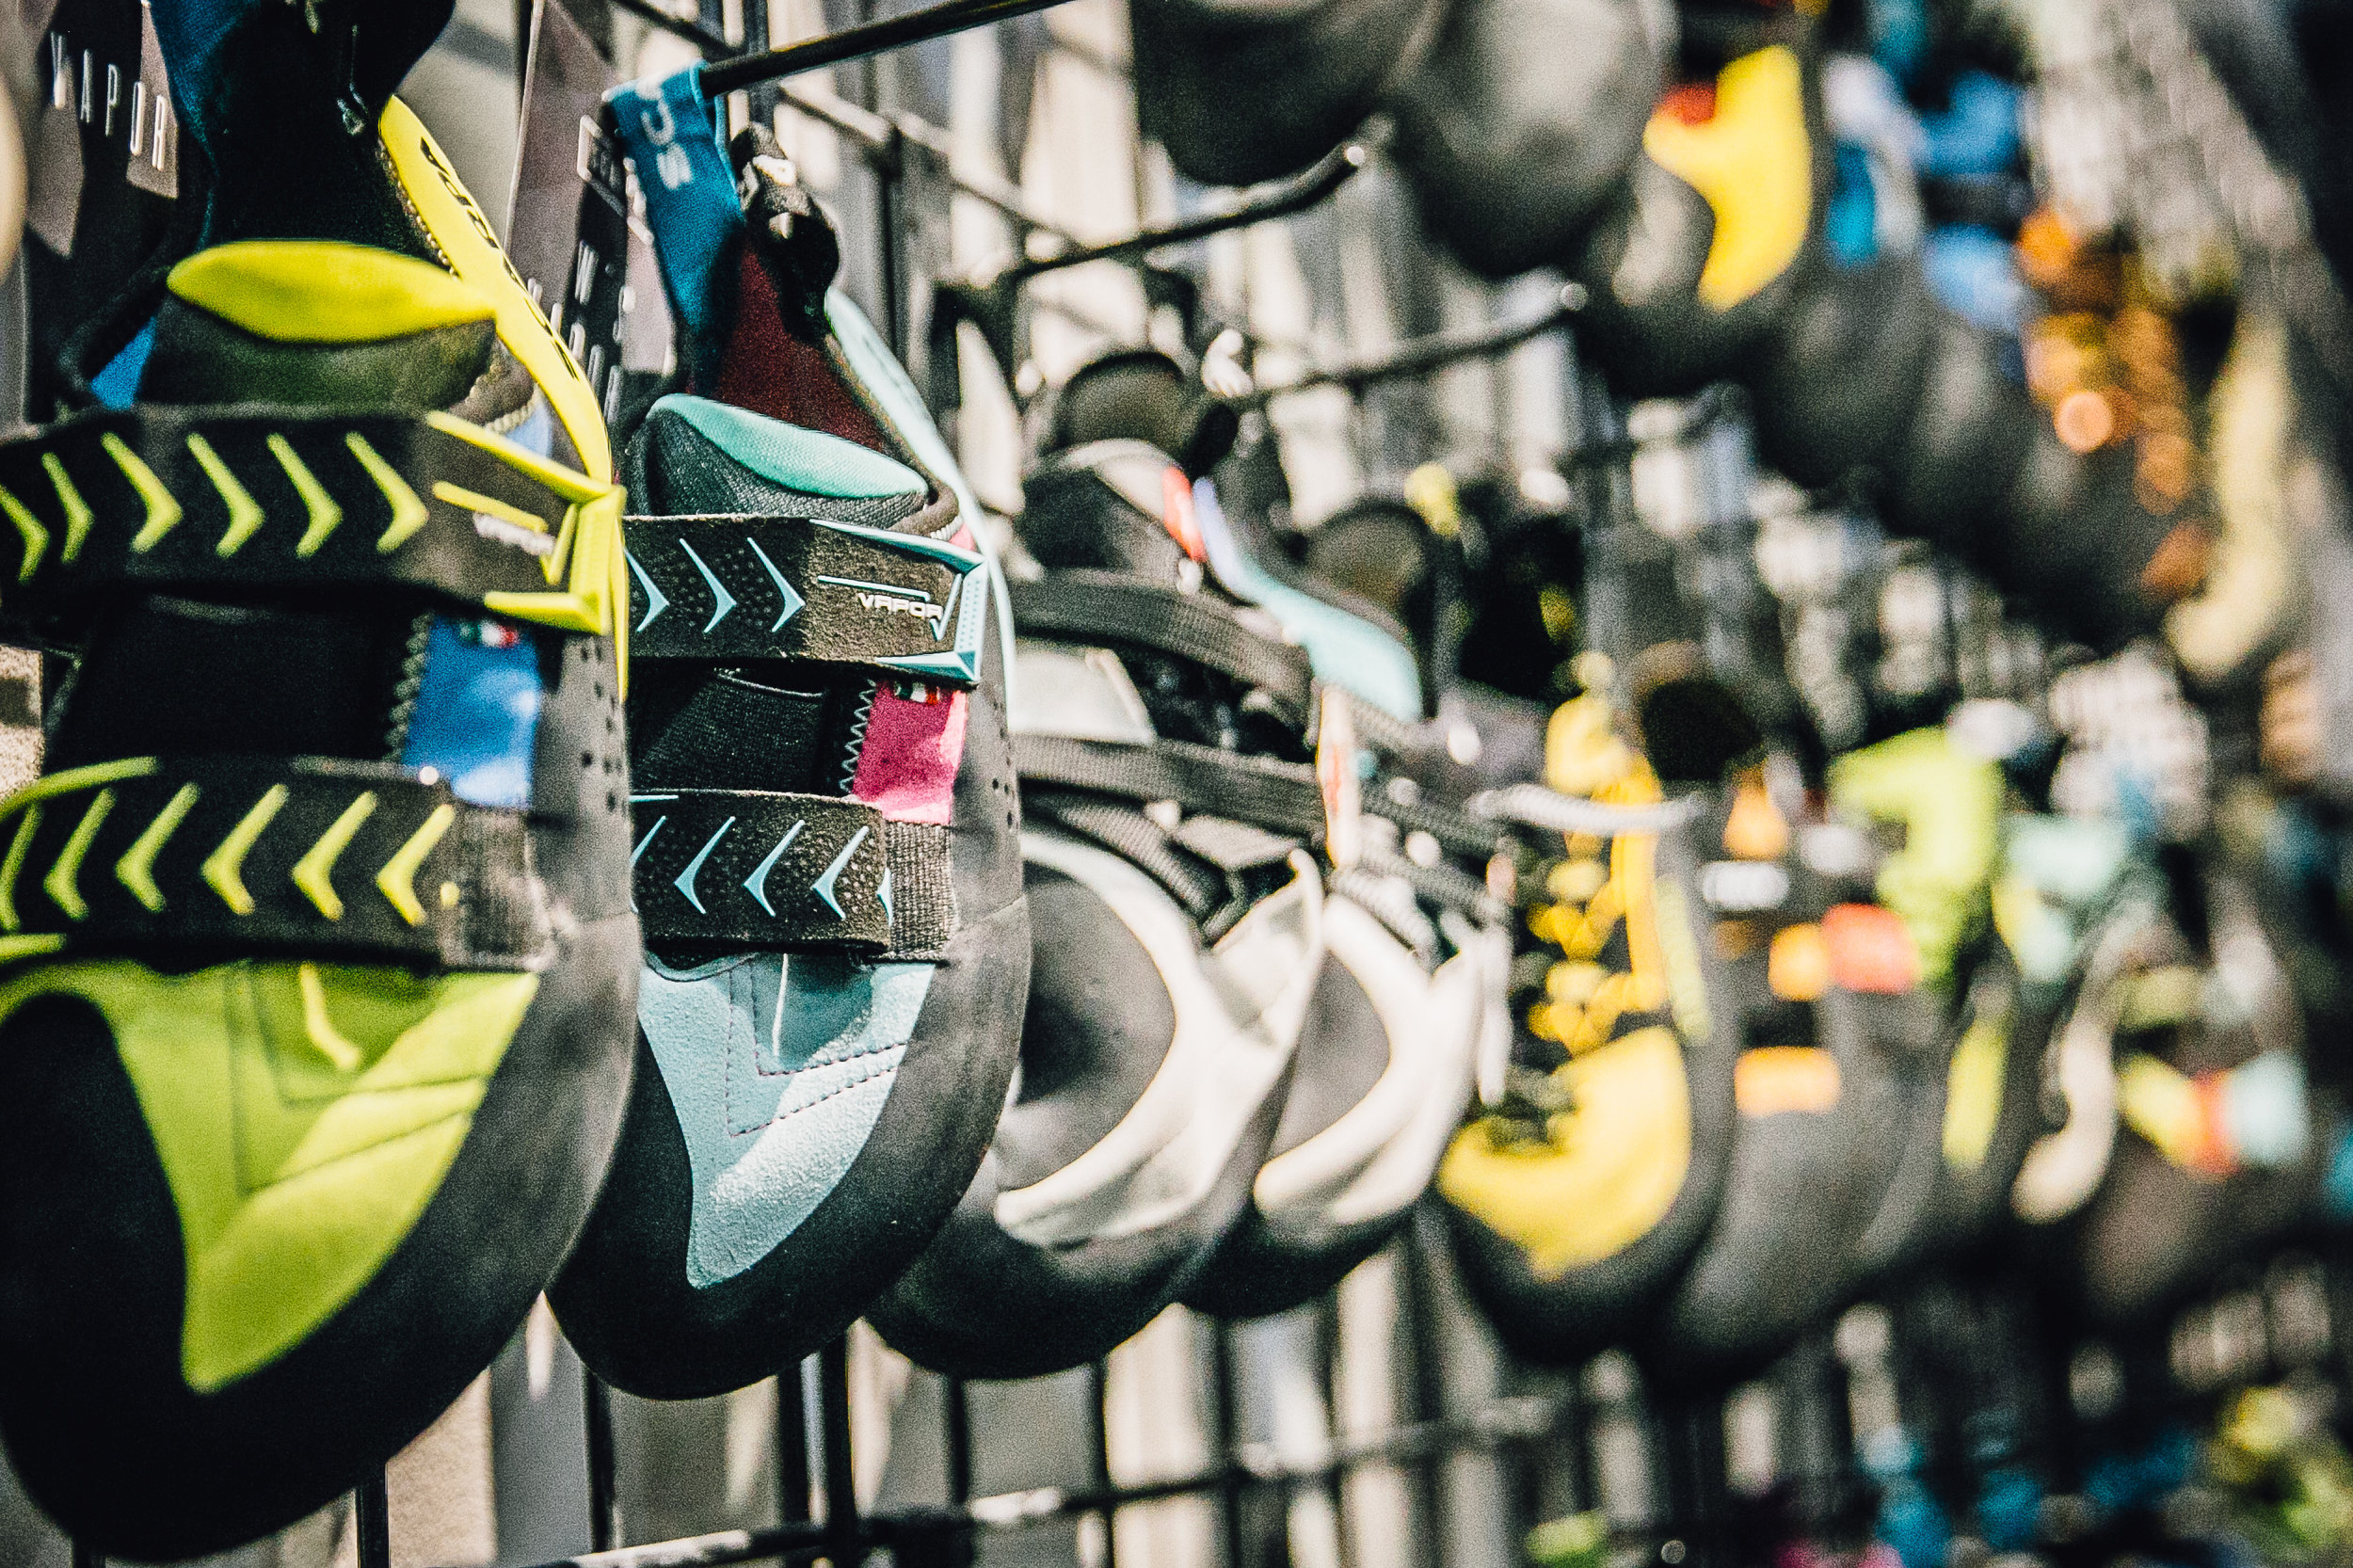 Climbing Shoes - Our gear shop is home to the largest selection of climbing shoes in NYC. Whether you're looking for for a particular brand, fit, or color, we'll get you into the pair of your dreams.Here are the brands we carry:ButoraEvolvFive TenLa SportivaScarpaSo iLLTenayaUnparallel